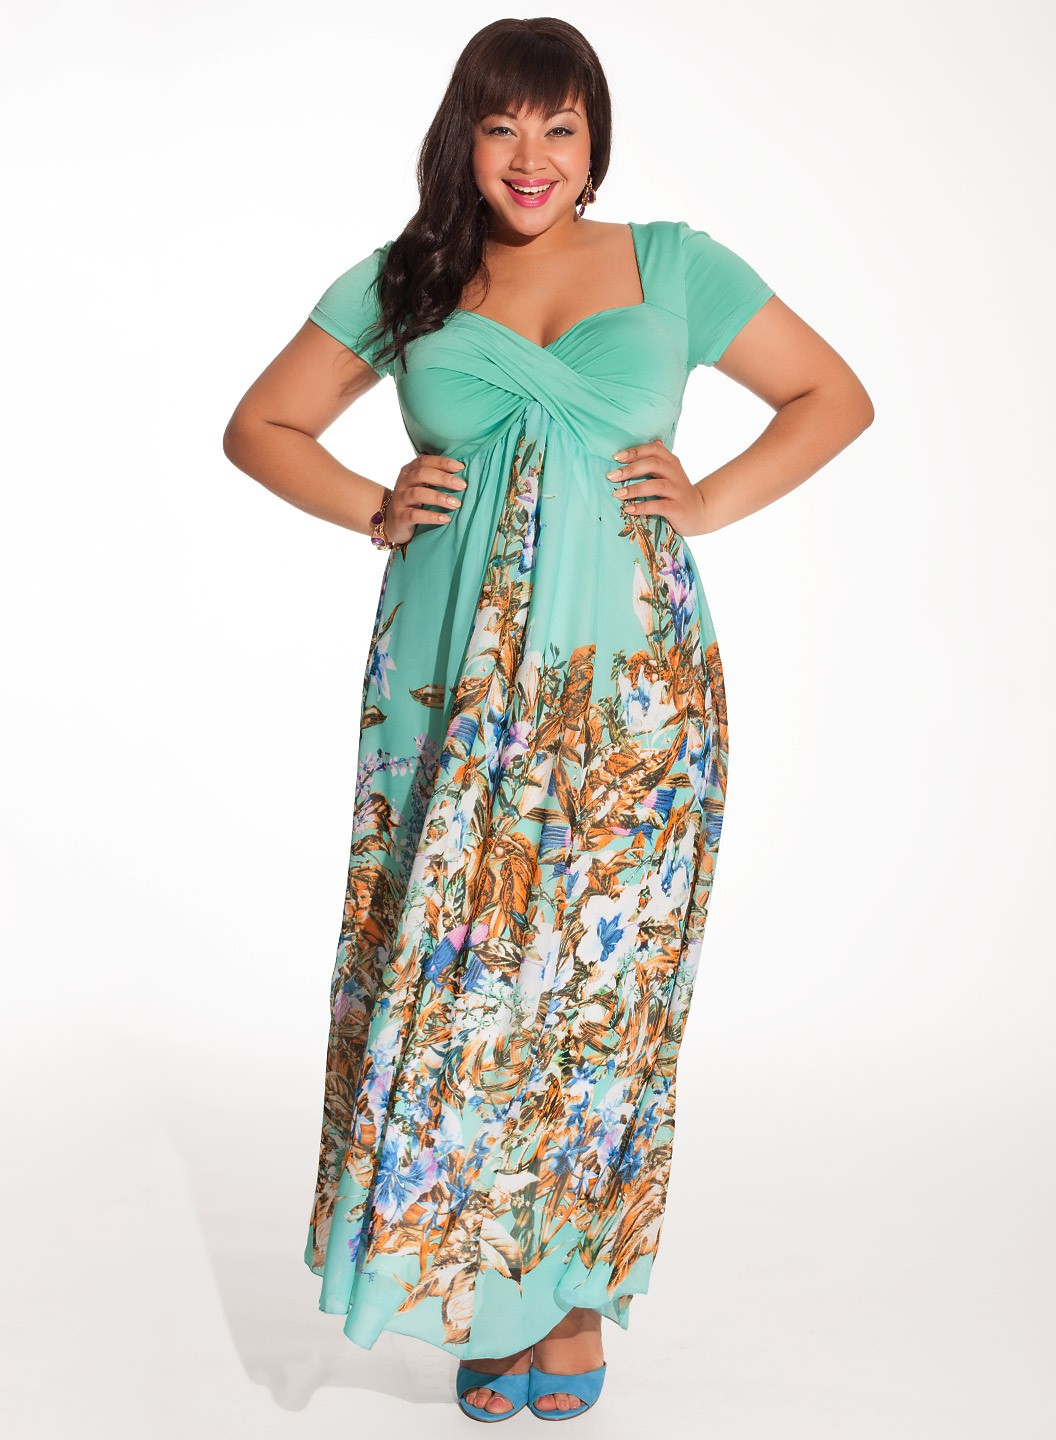 51 Plus Size Wedding Guest Dresses For The Ultimate Guide To Bridal Season Ping